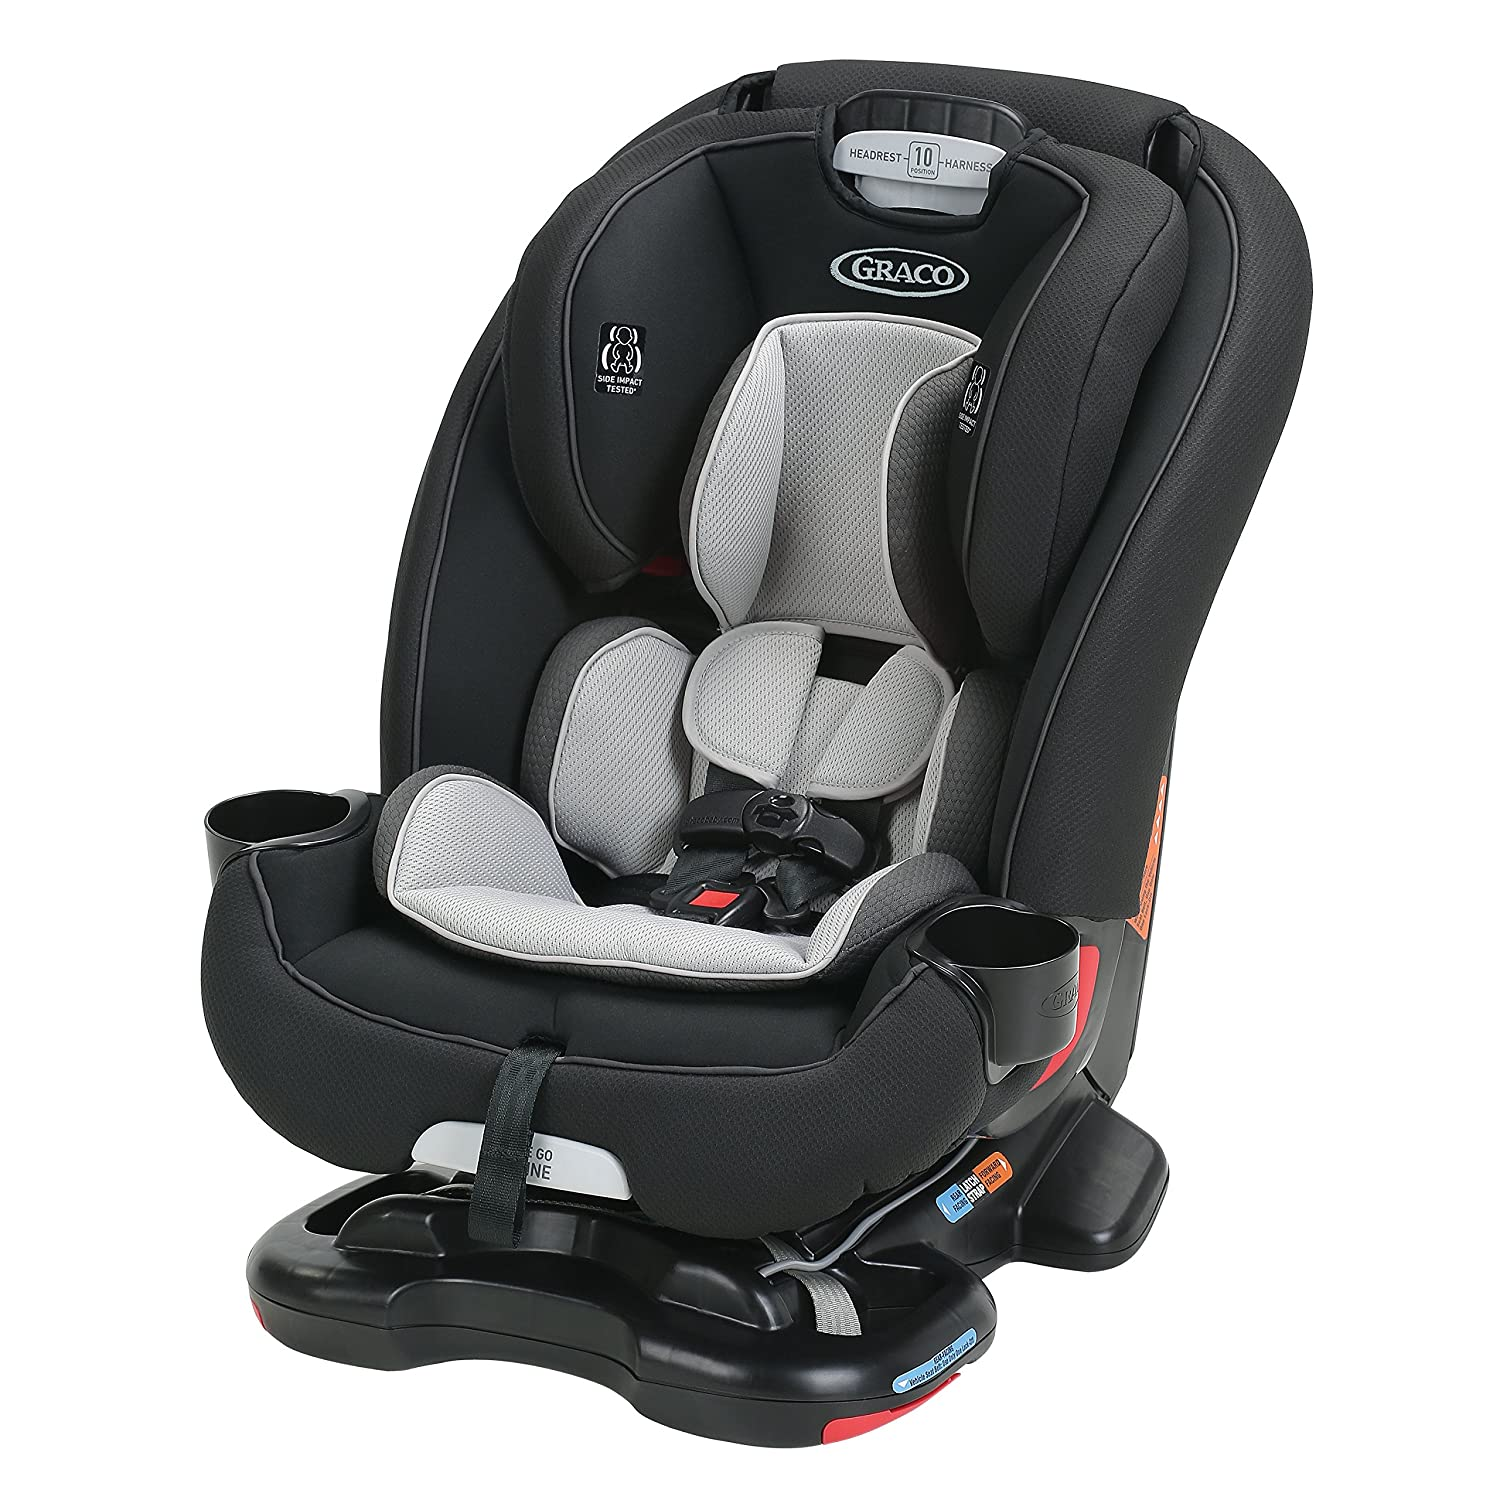 Amazon.com : Graco Recline N' Ride 3-in-1 Car Seat featuring On the ...